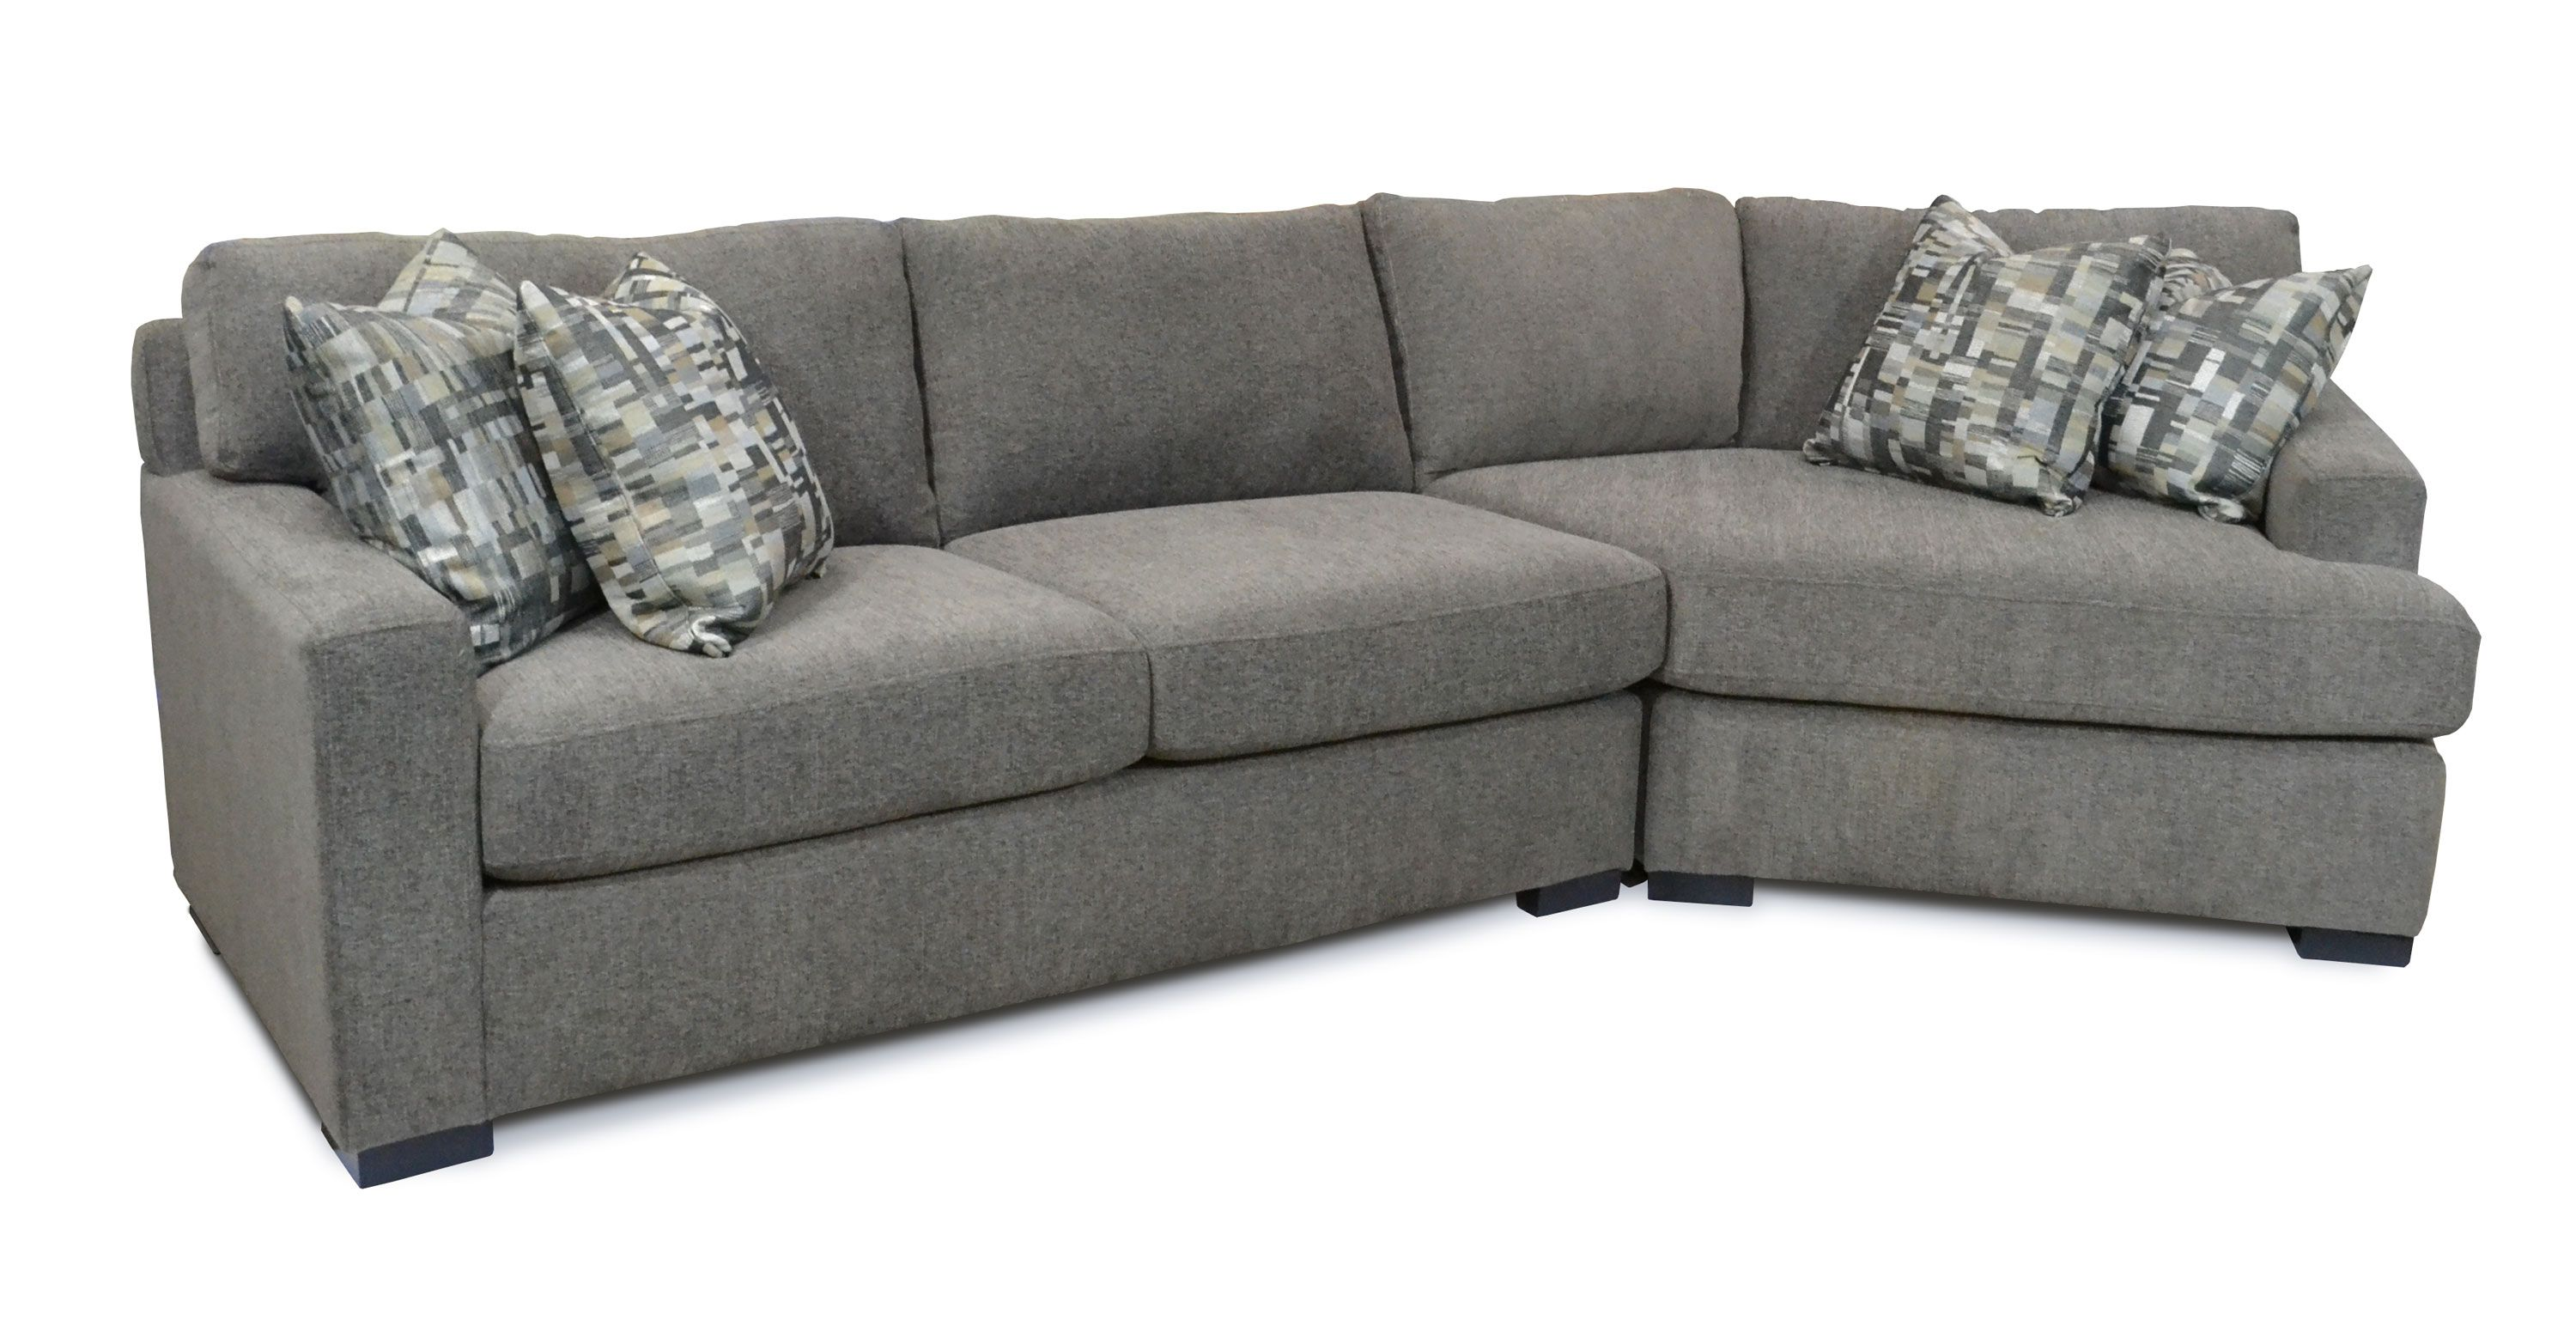 Peachy Stanton Sofas Reviews Frasesdeconquista Com Home Interior And Landscaping Dextoversignezvosmurscom